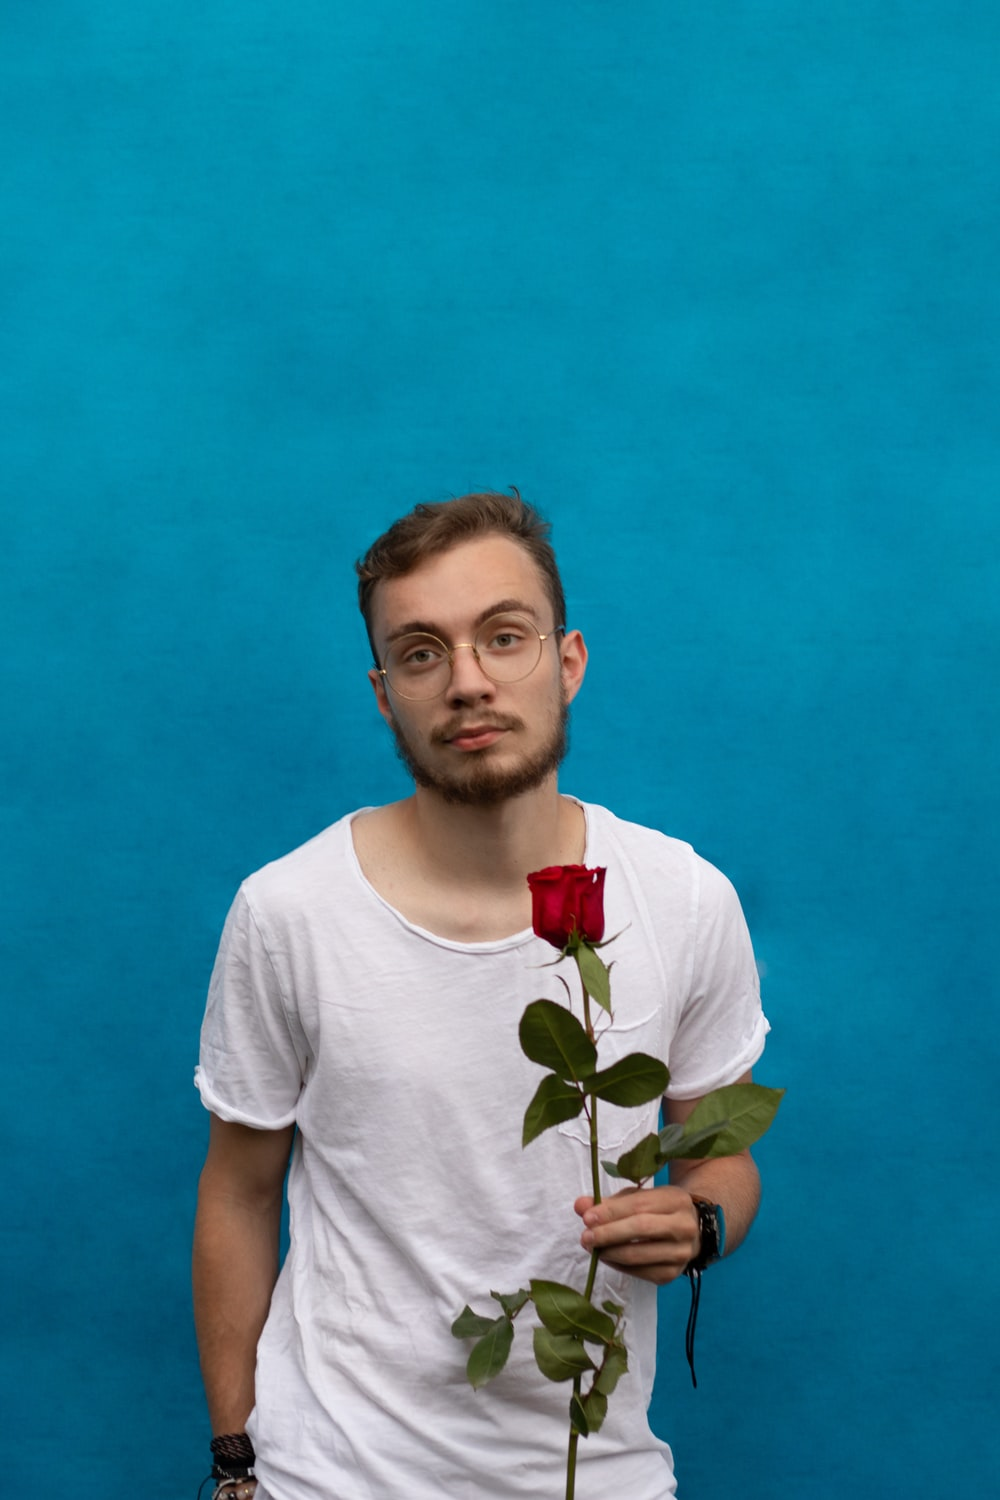 man in white crew neck t-shirt holding red rose